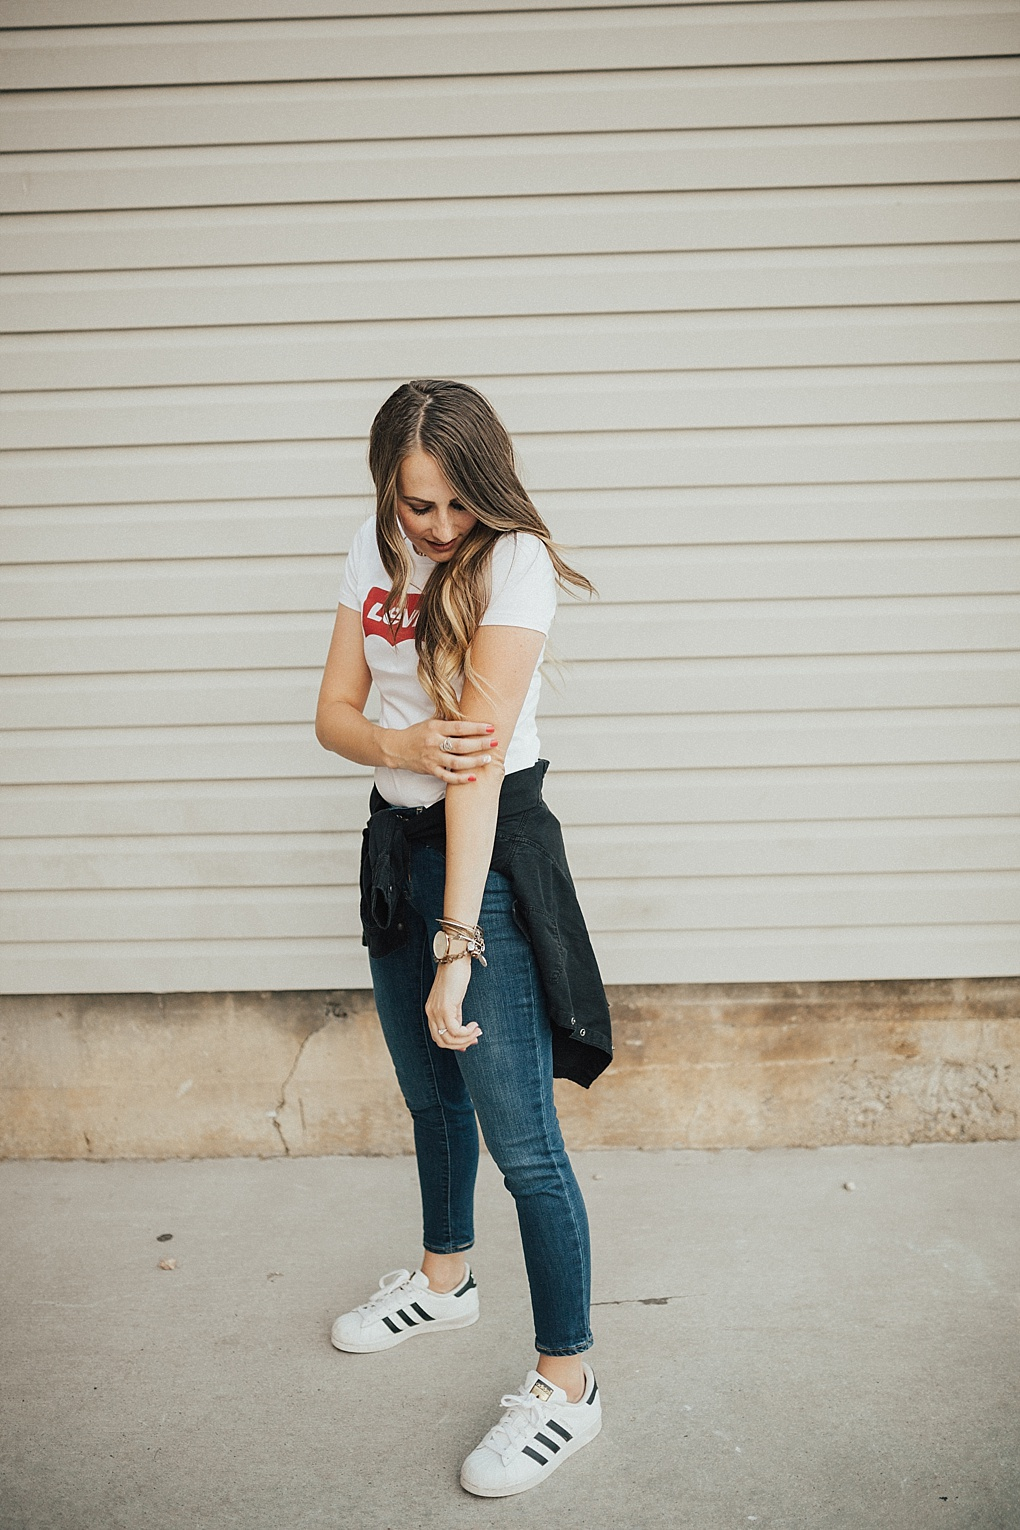 2 Ways To Wear A Graphic Tee For Fall by Utah fashion blogger Dani Marie